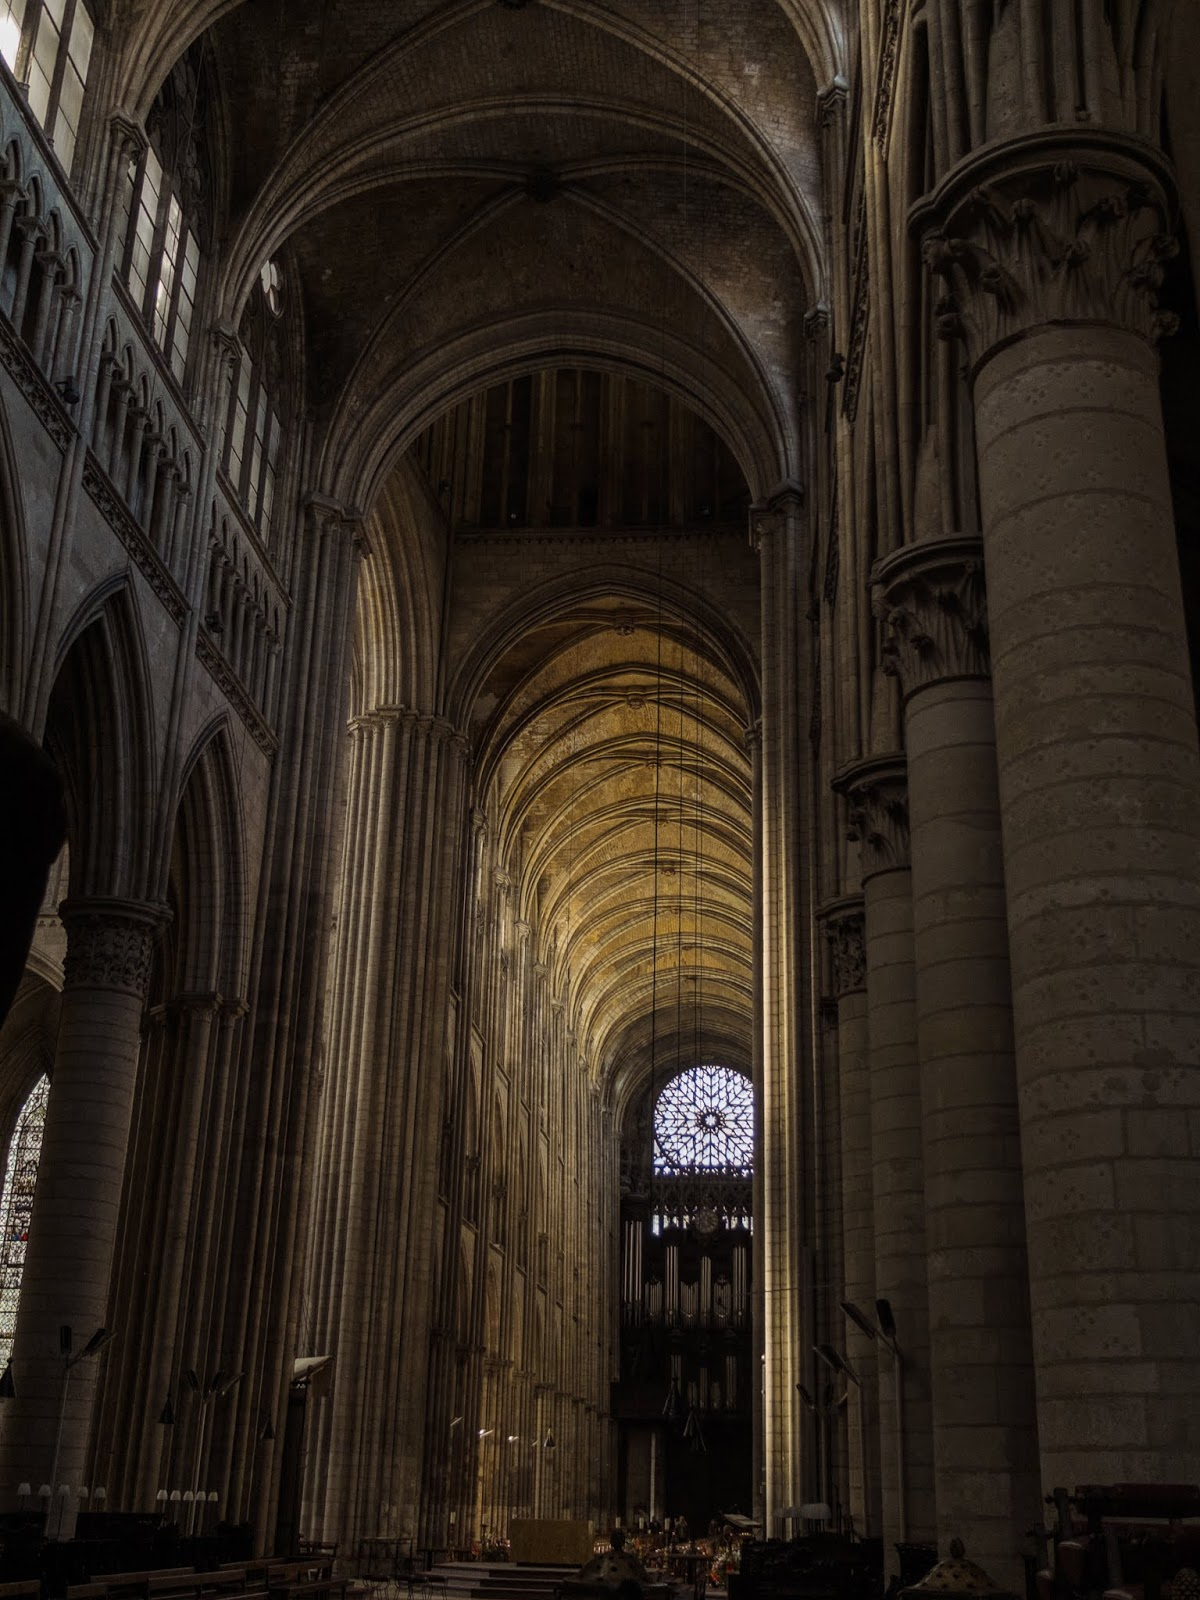 On the inside of the Cathedral of Rouen, Northern France.